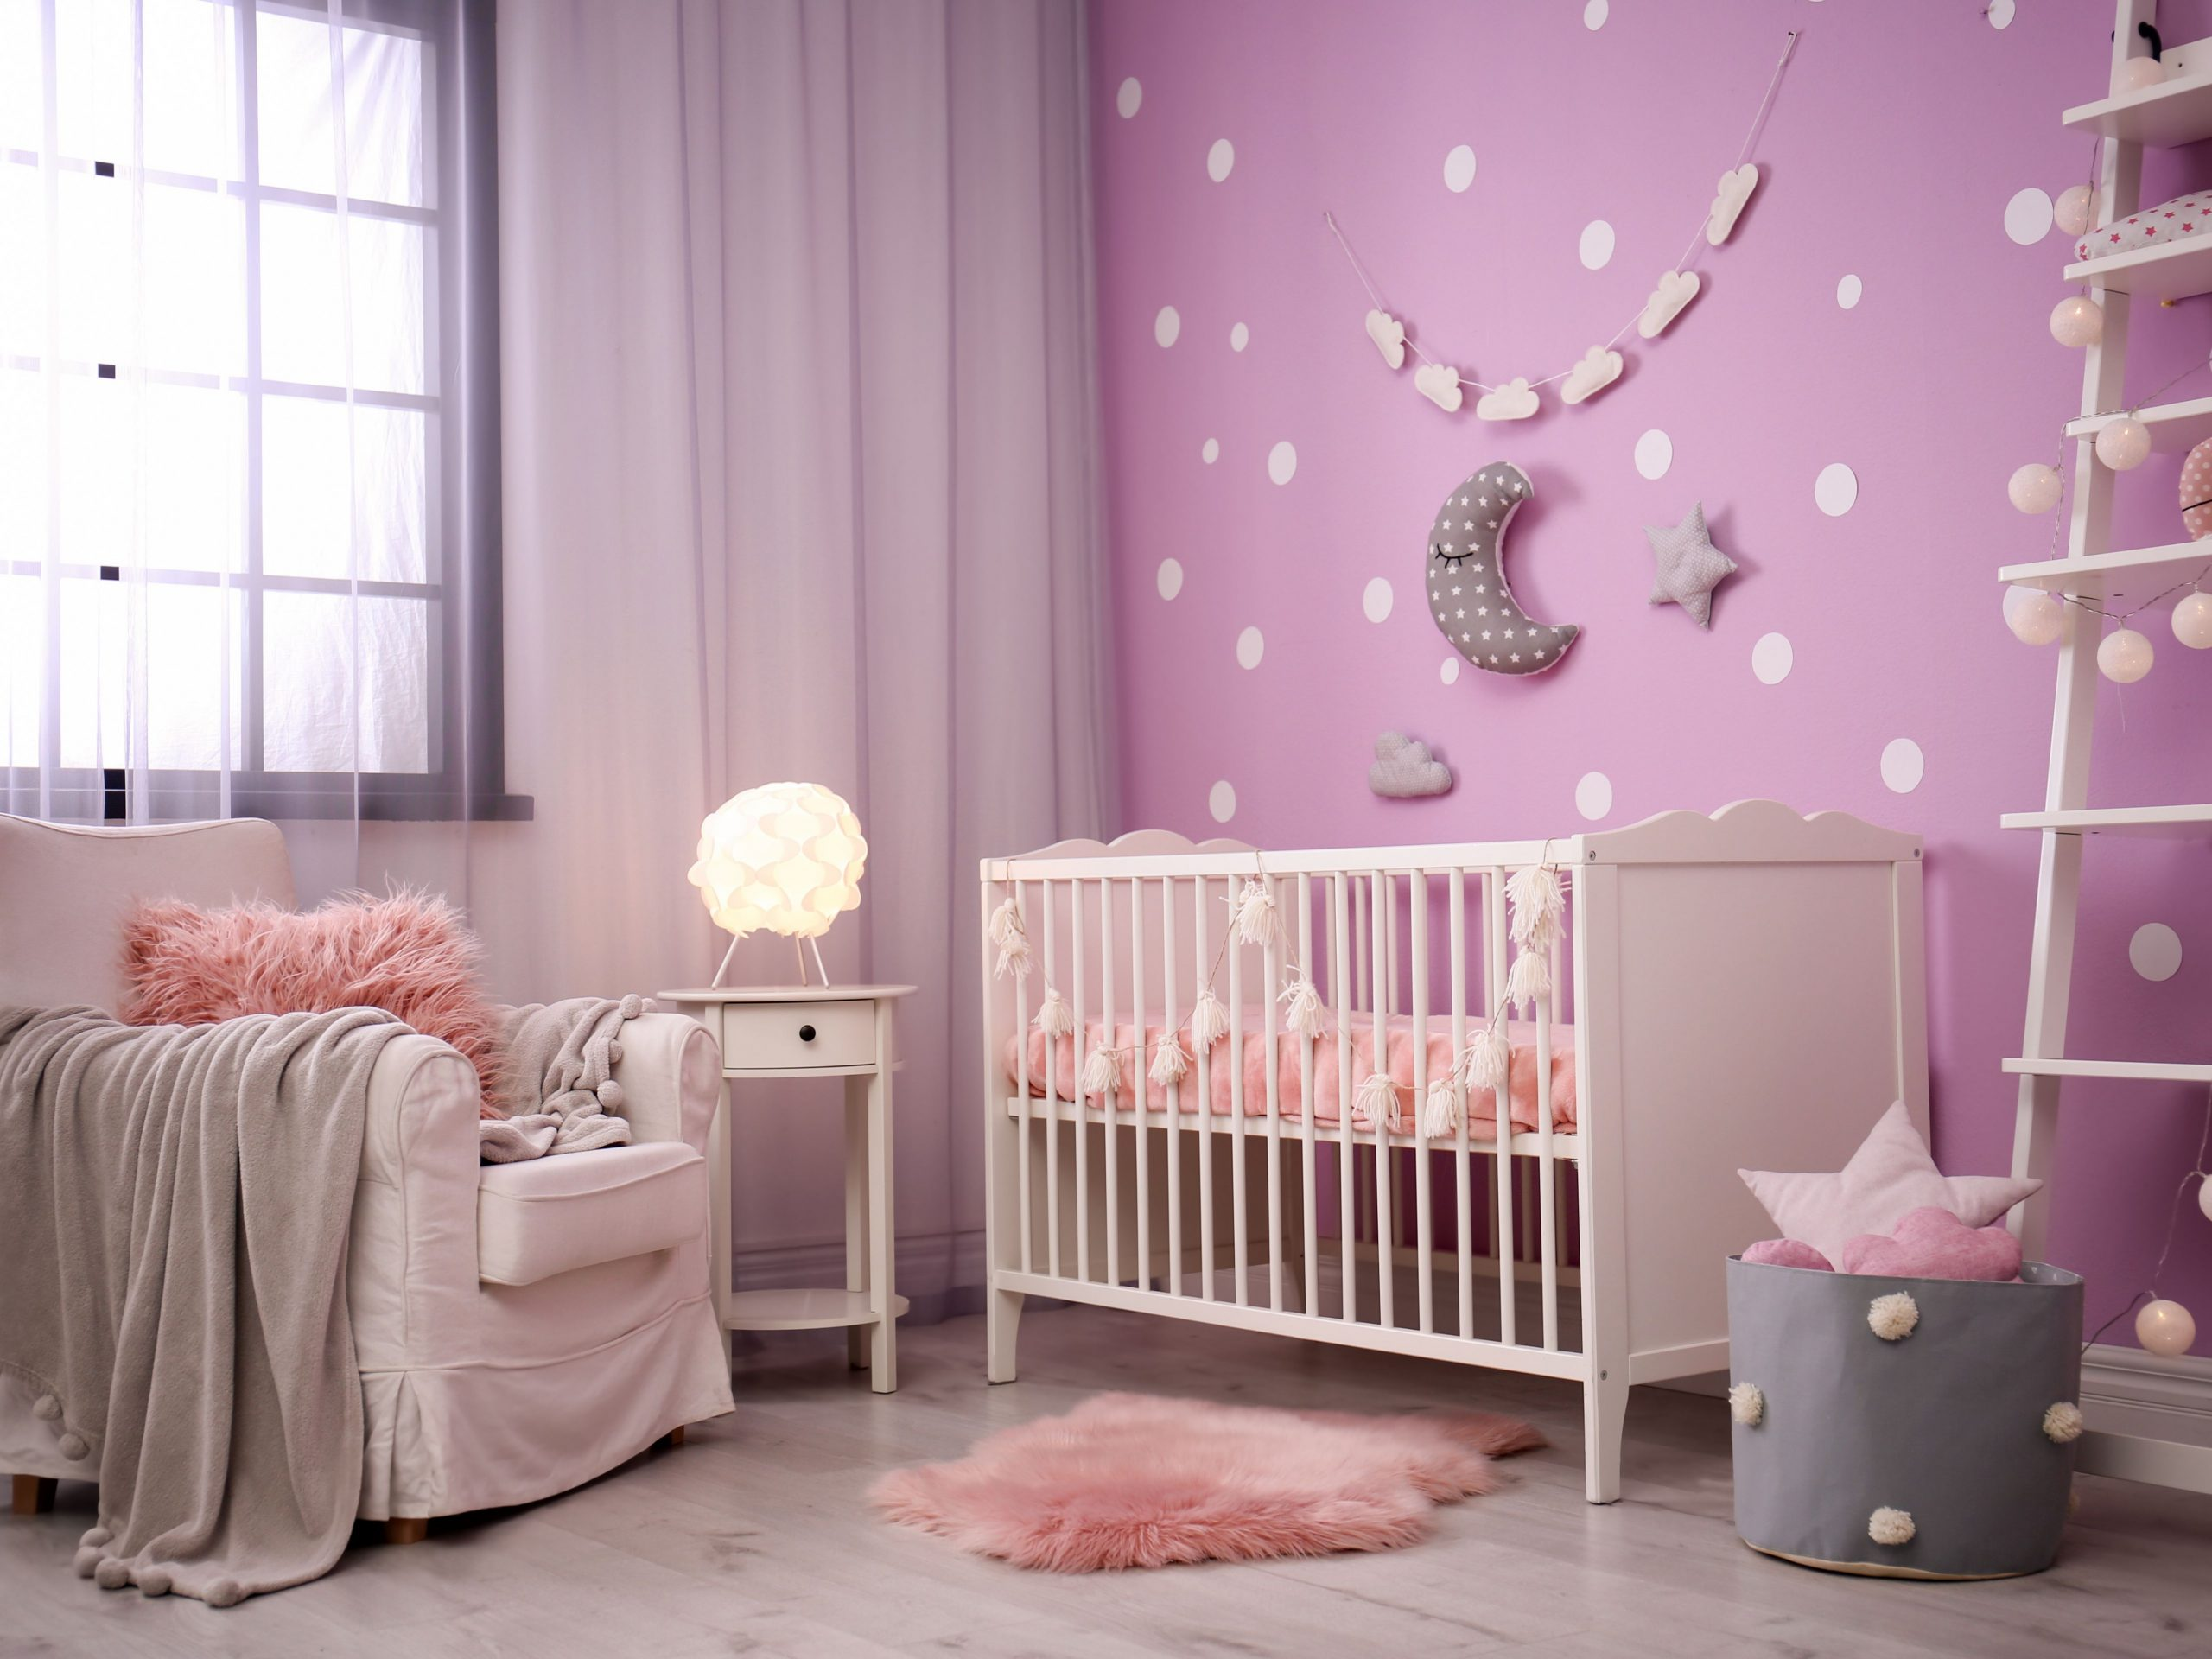 12 Creative Nursery Wall Ideas - Baby Room Pictures